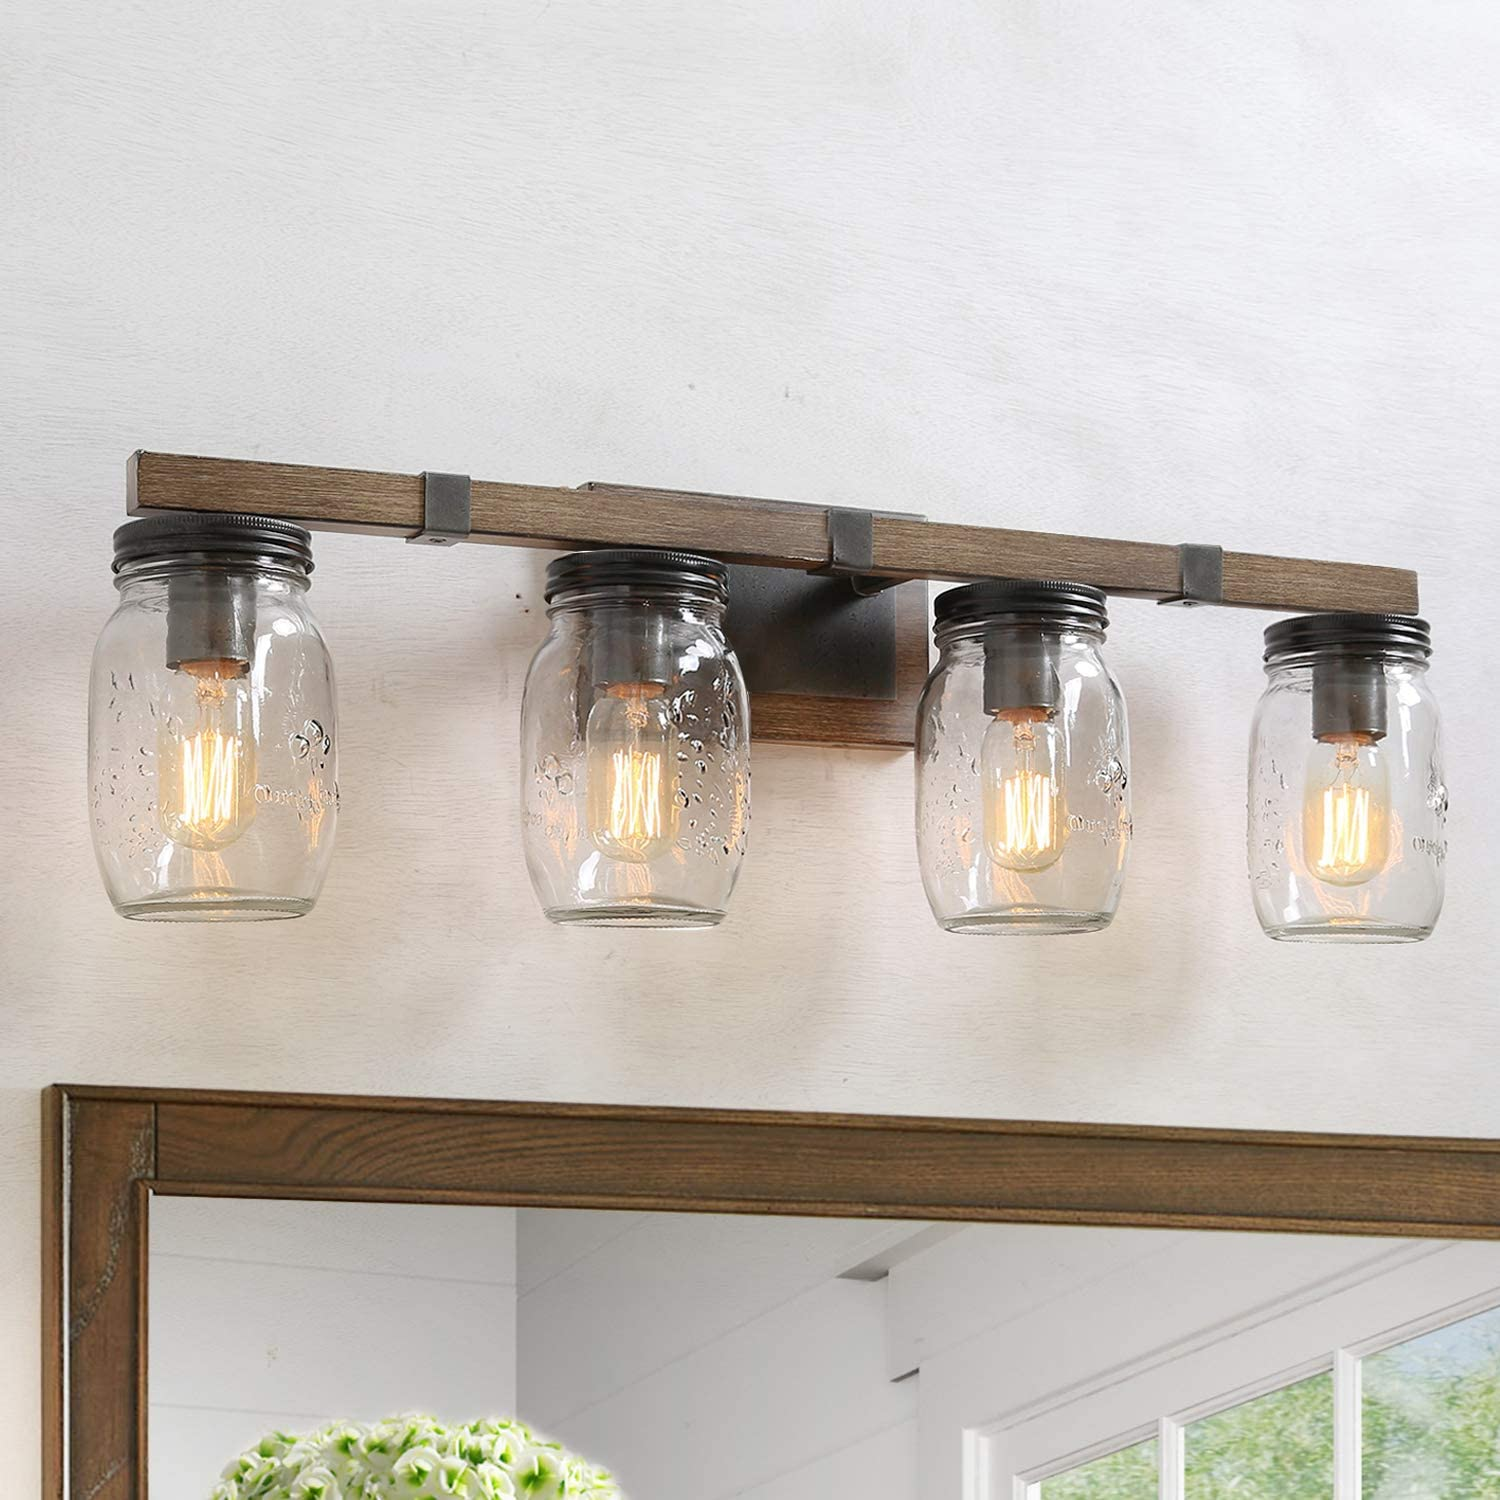 Lnc Rustic Bathroom Light Fixtures Farmhouse Vanity Lighting With Mason Jar Glass Wooden Finished 29 Inches Amazon Com